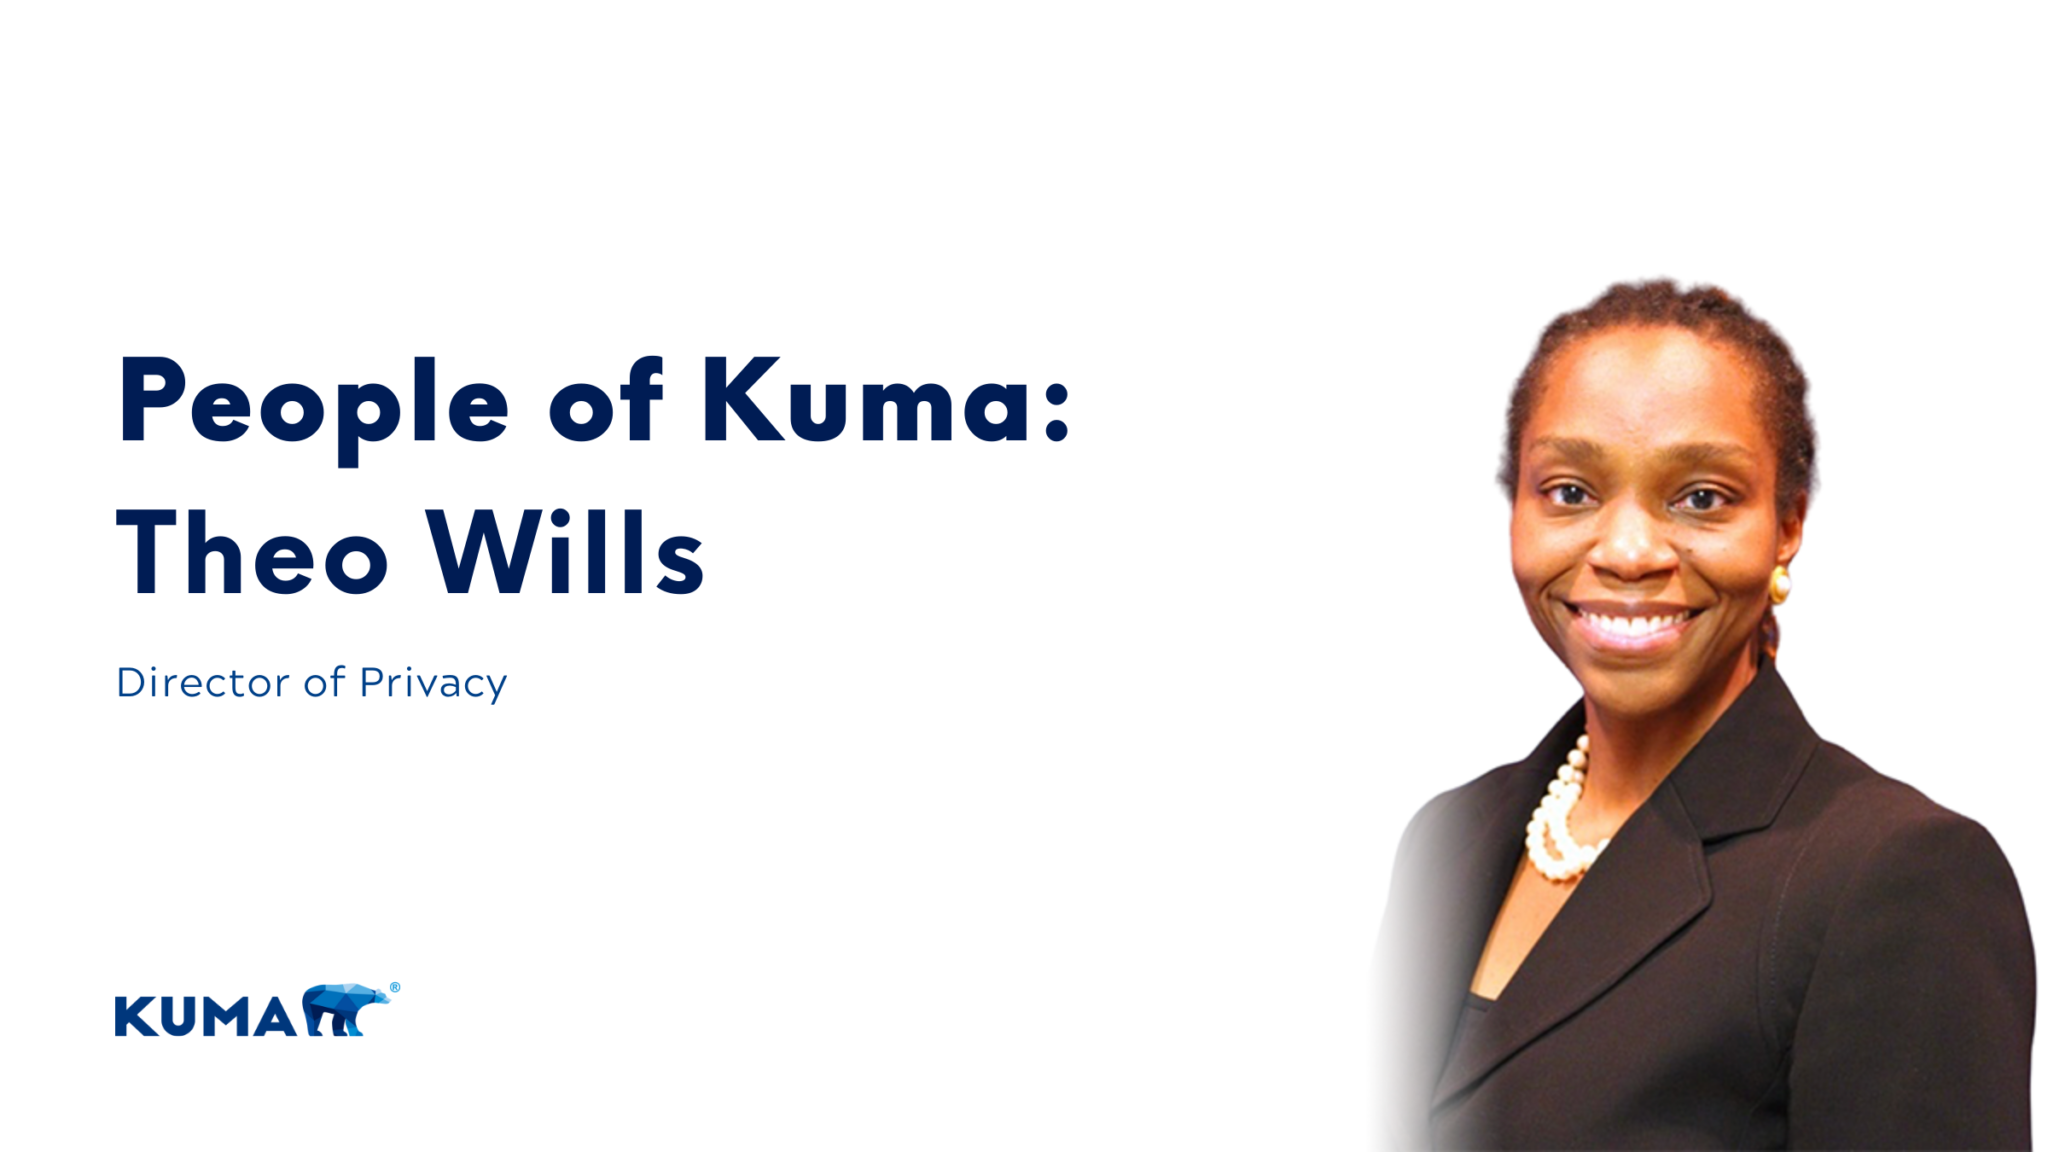 People of Kuma – Theodora Wills